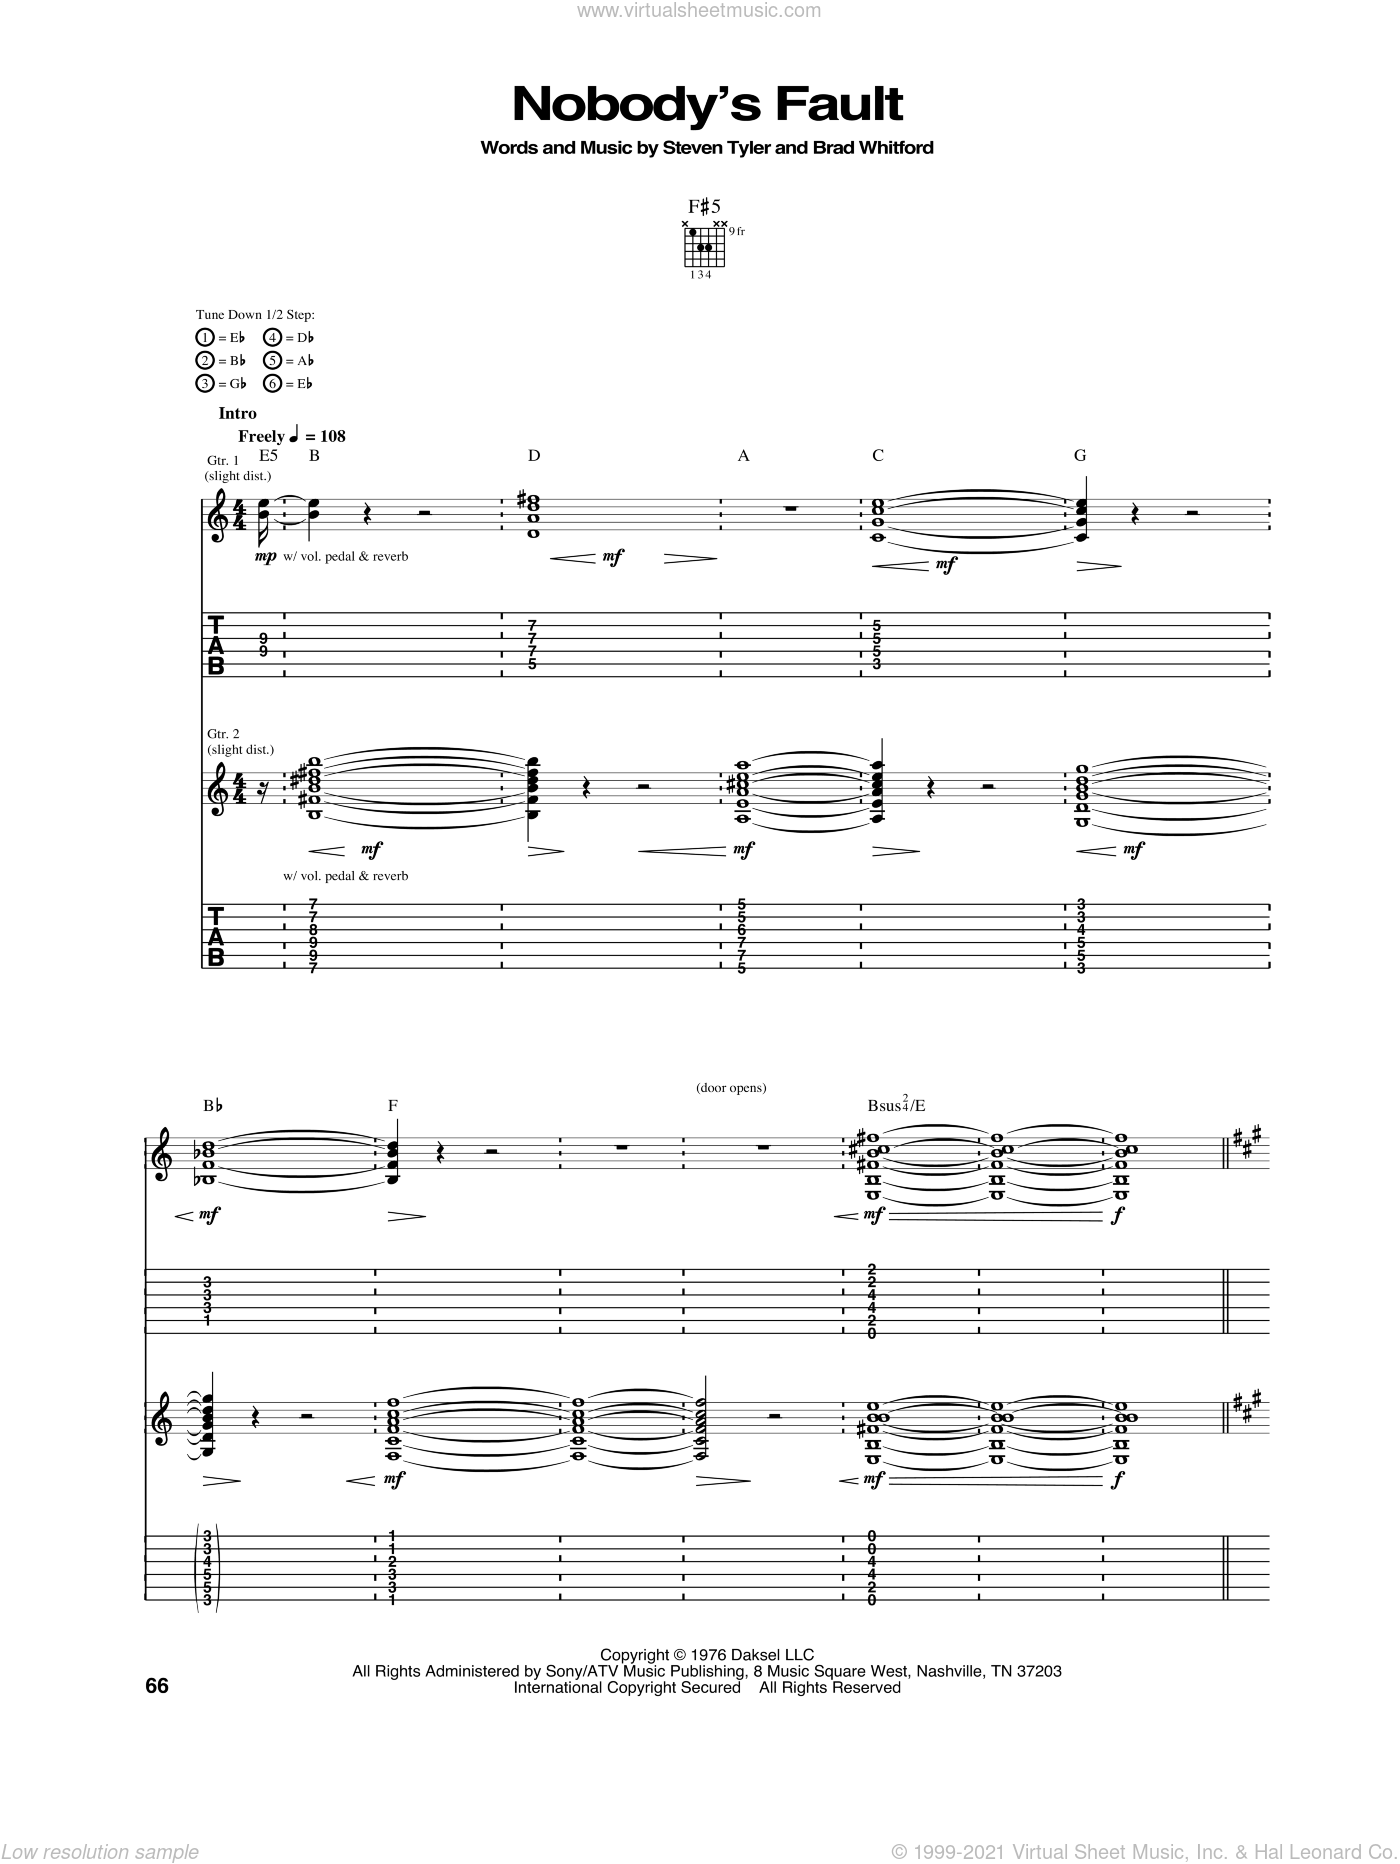 Nobody's Fault sheet music for guitar (tablature) by Aerosmith, Brad Whitford and Steven Tyler, intermediate skill level